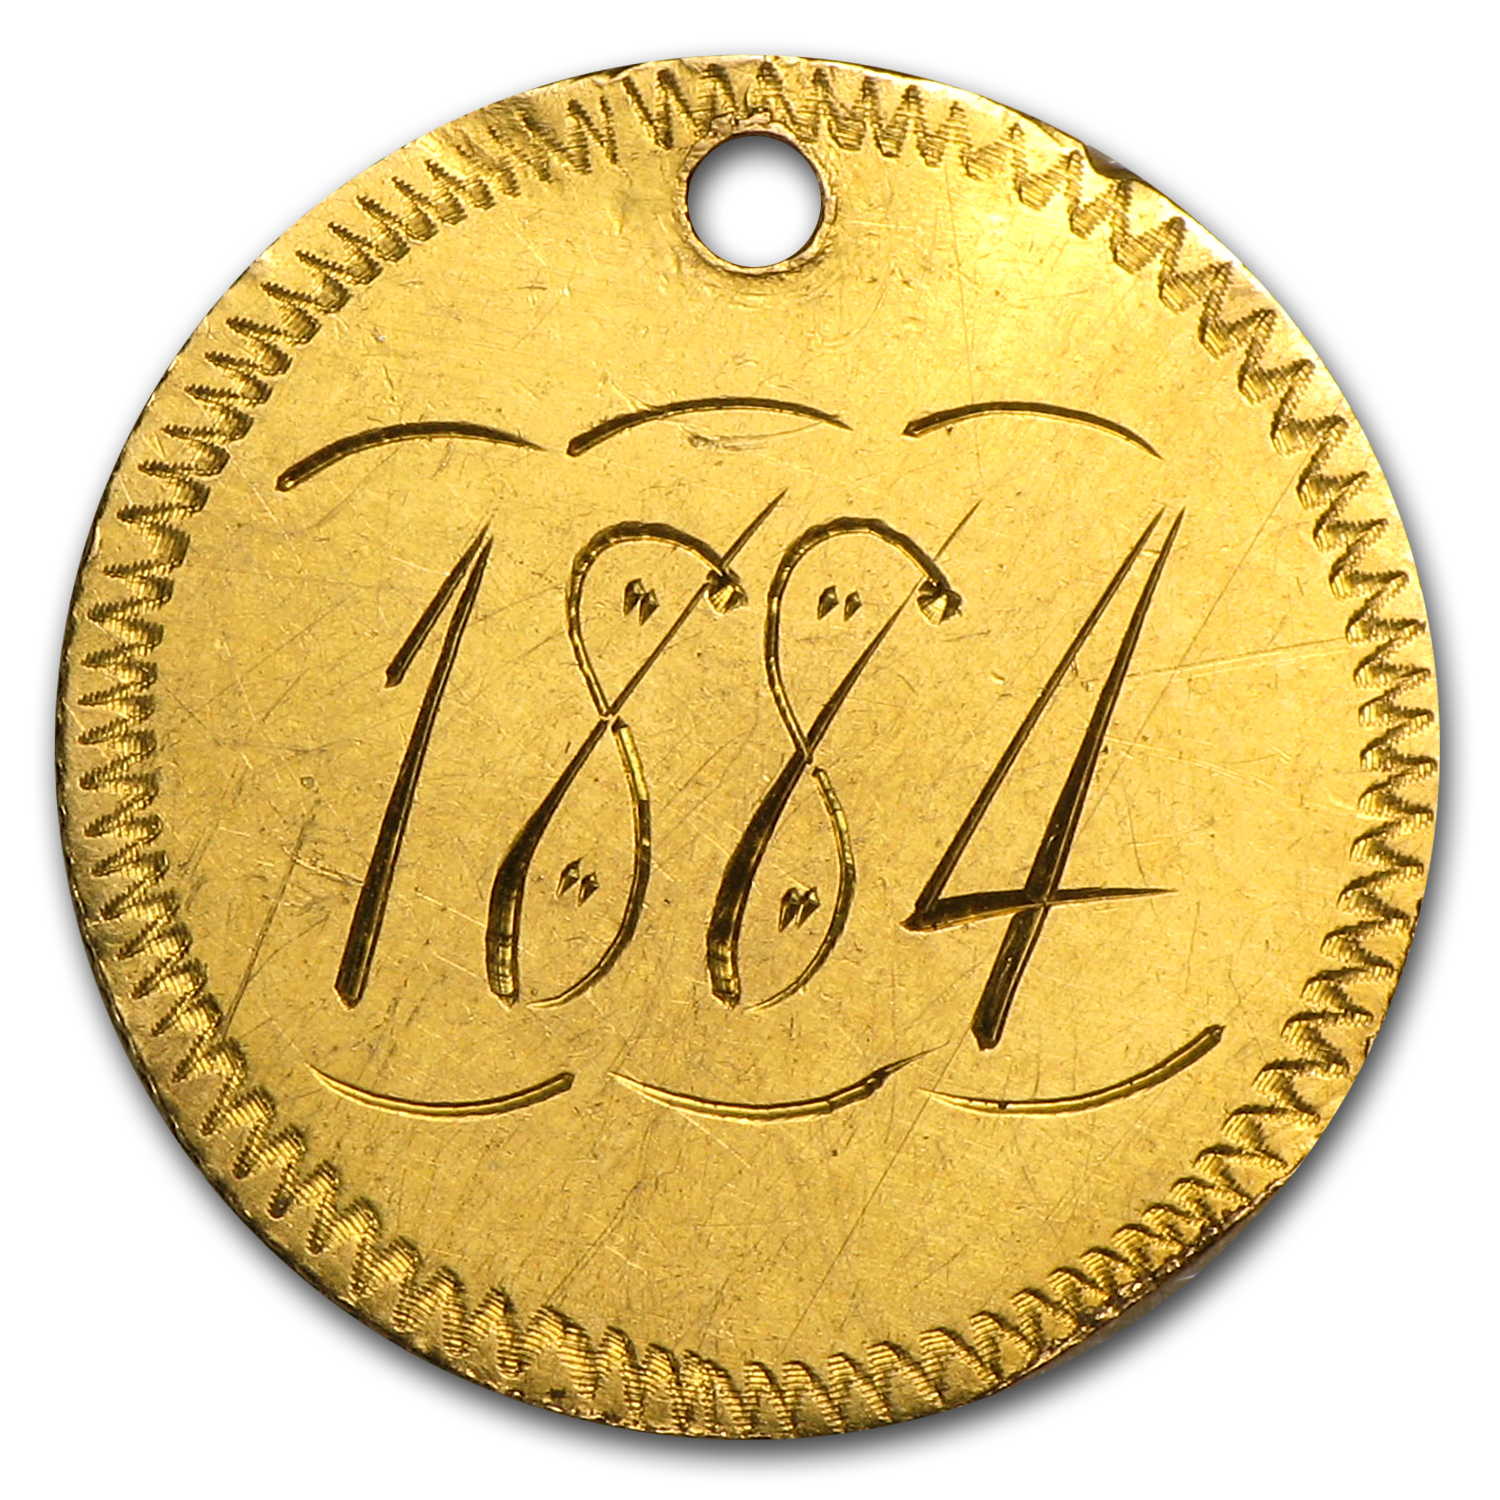 $1.00 Liberty Gold-Type III - No Date Love Token - 1 8 8 4